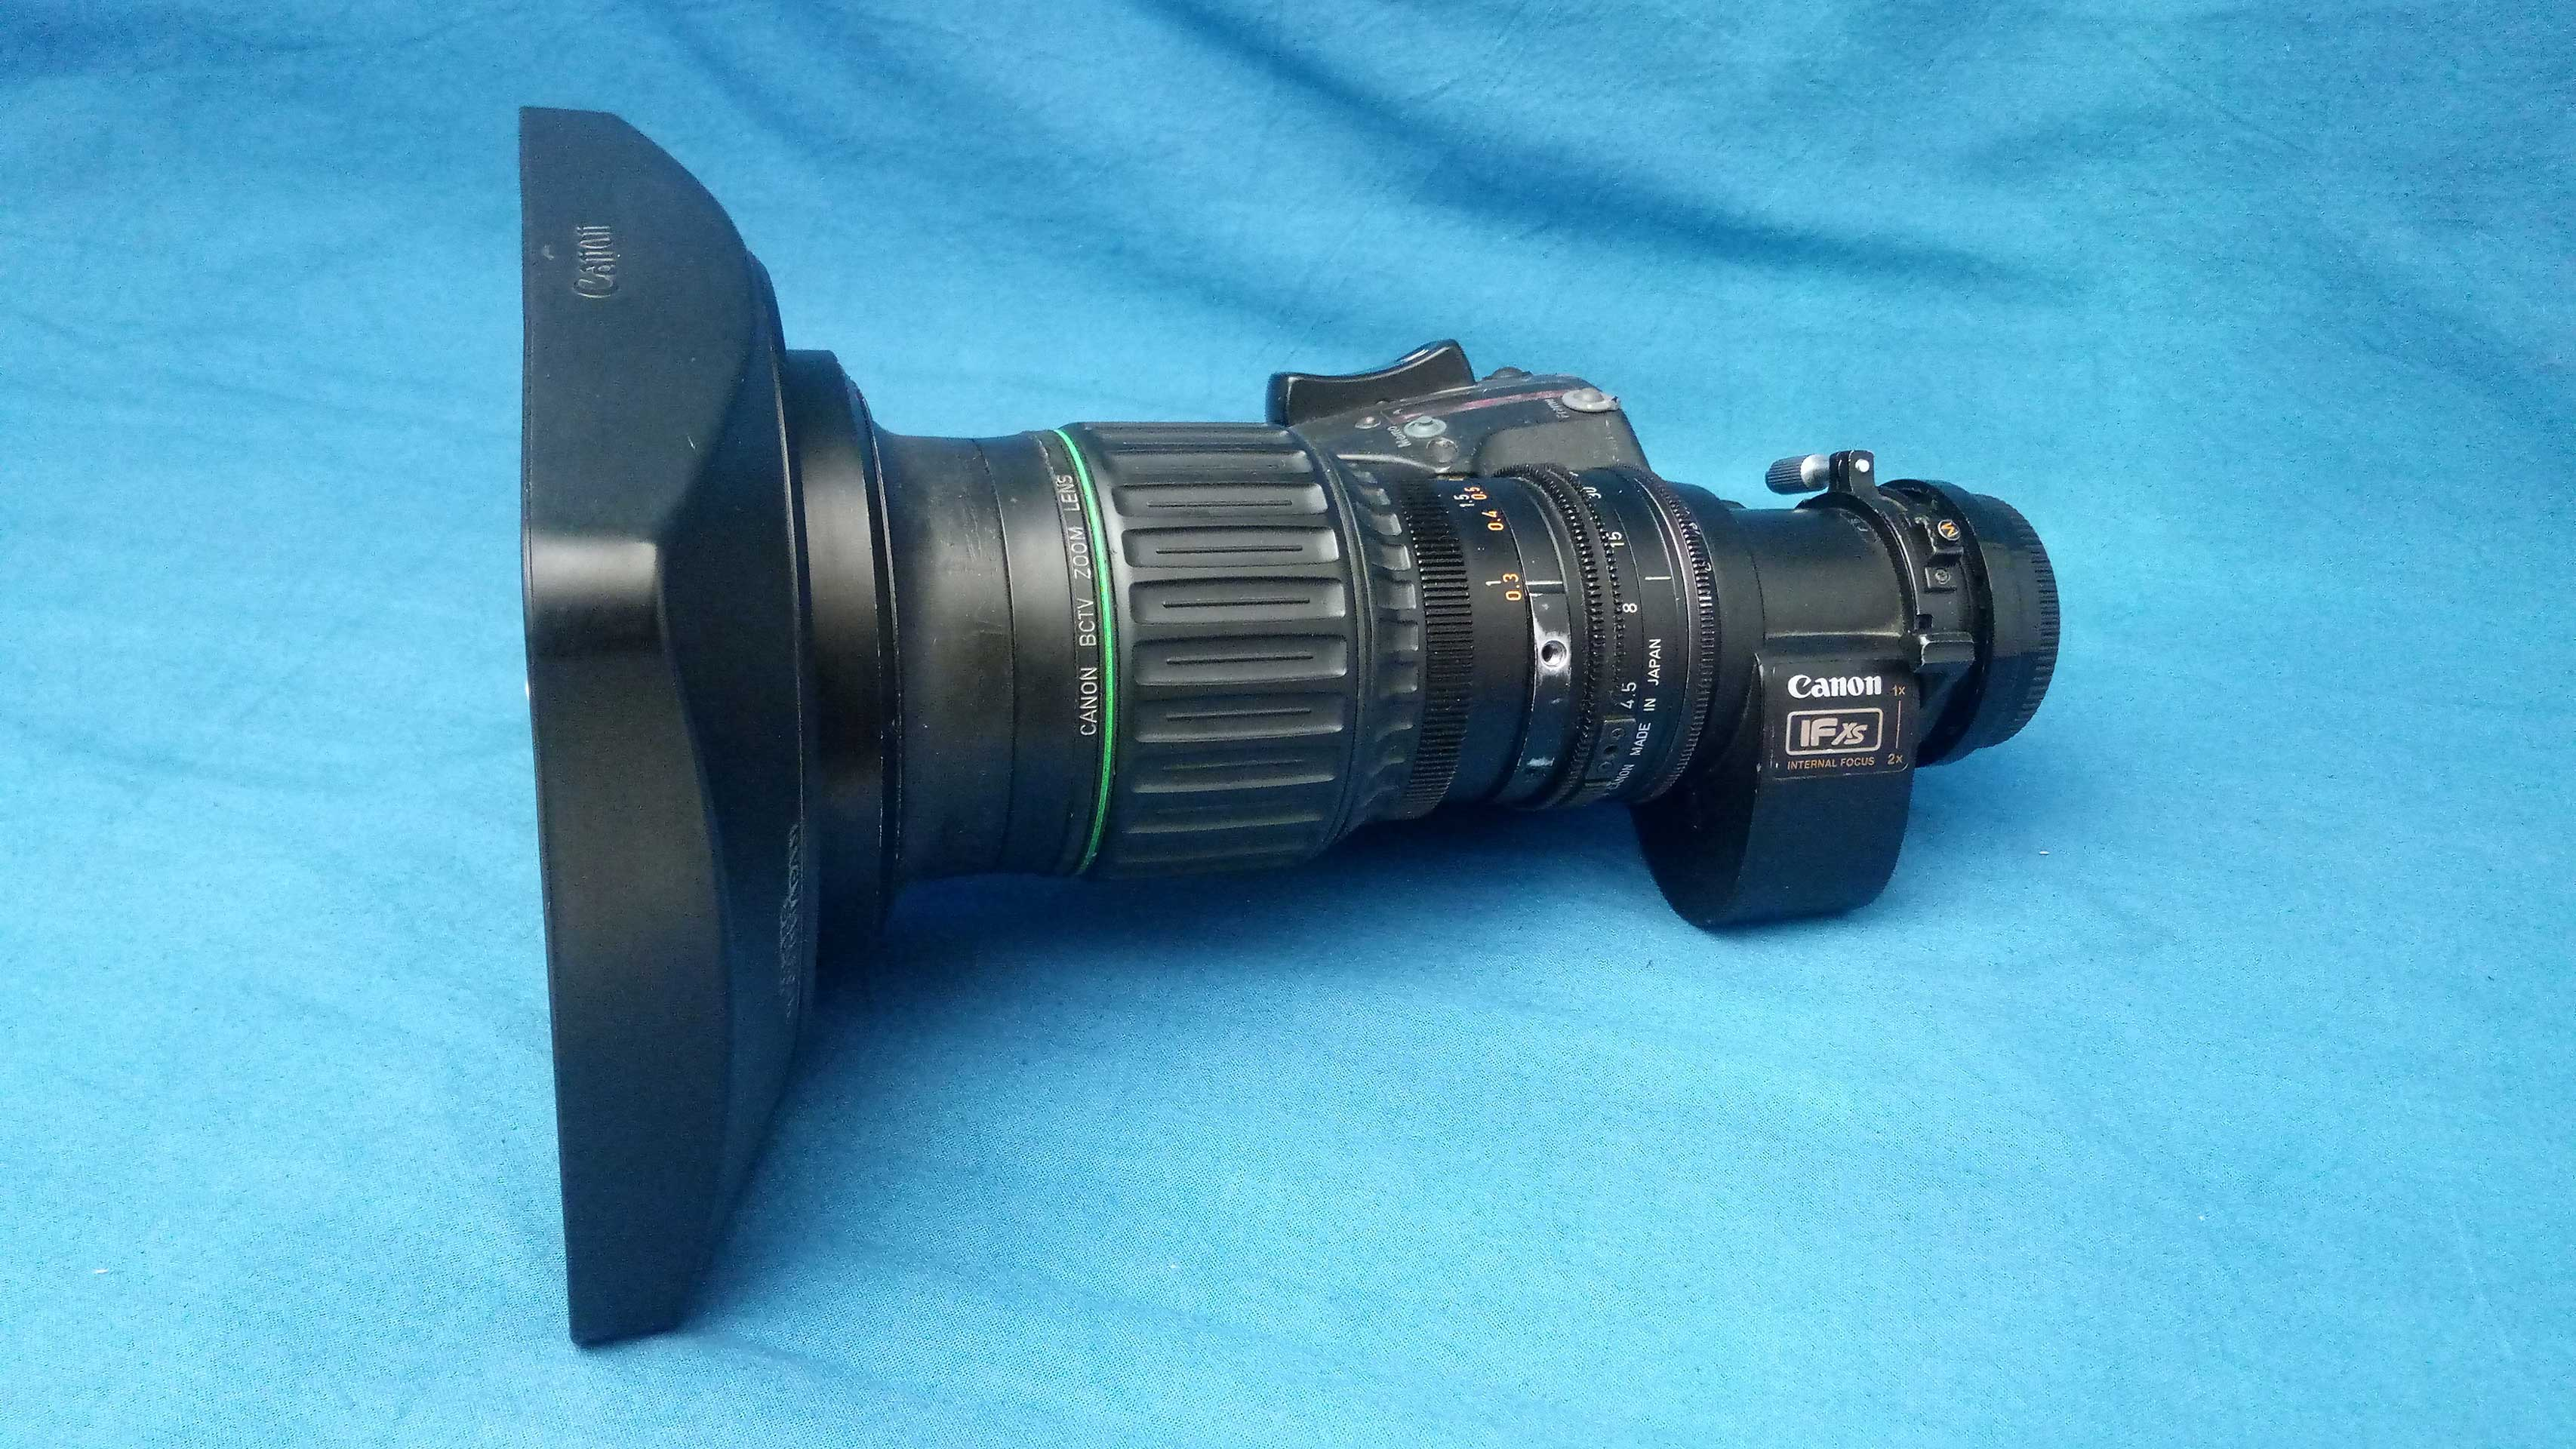 Canon J11a X 4.5 B IRSE wide angle lens with 2x doubler - Image #1